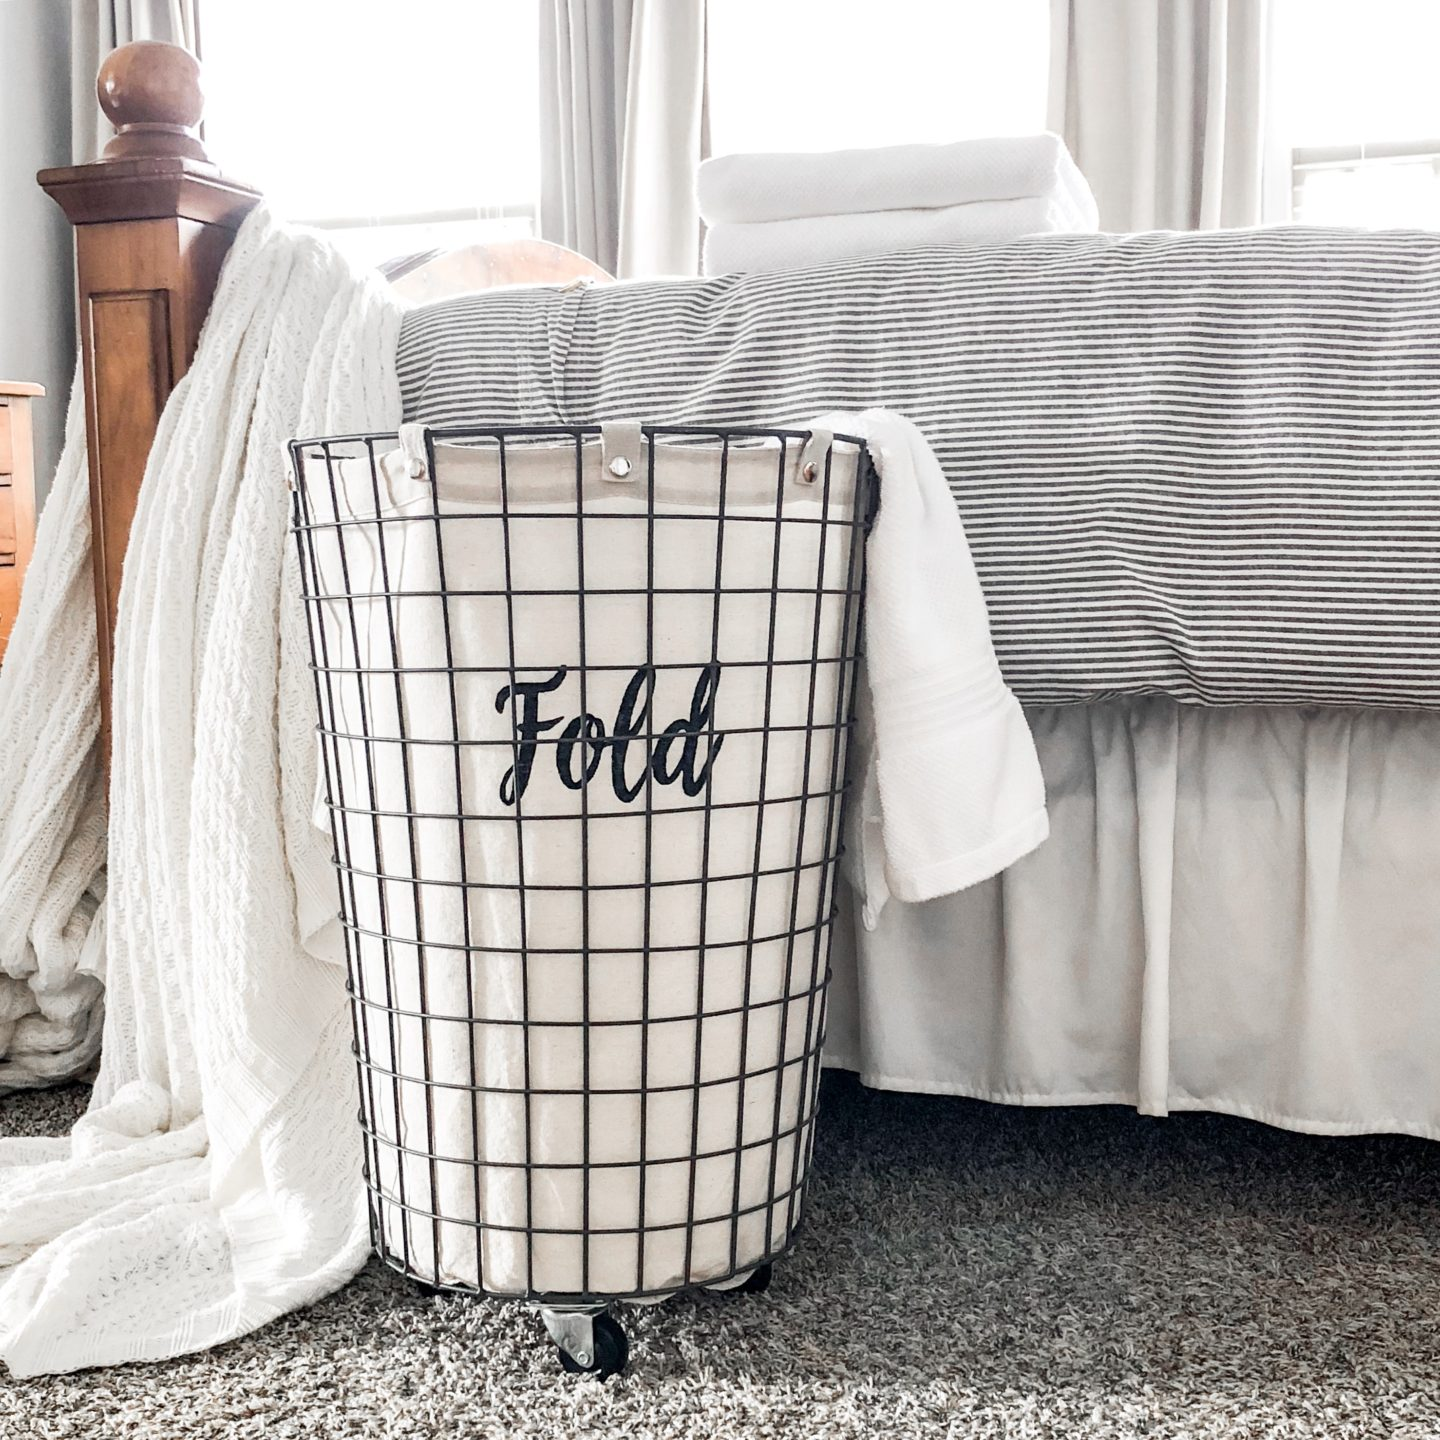 Making Your Own Laundry Basket Labels